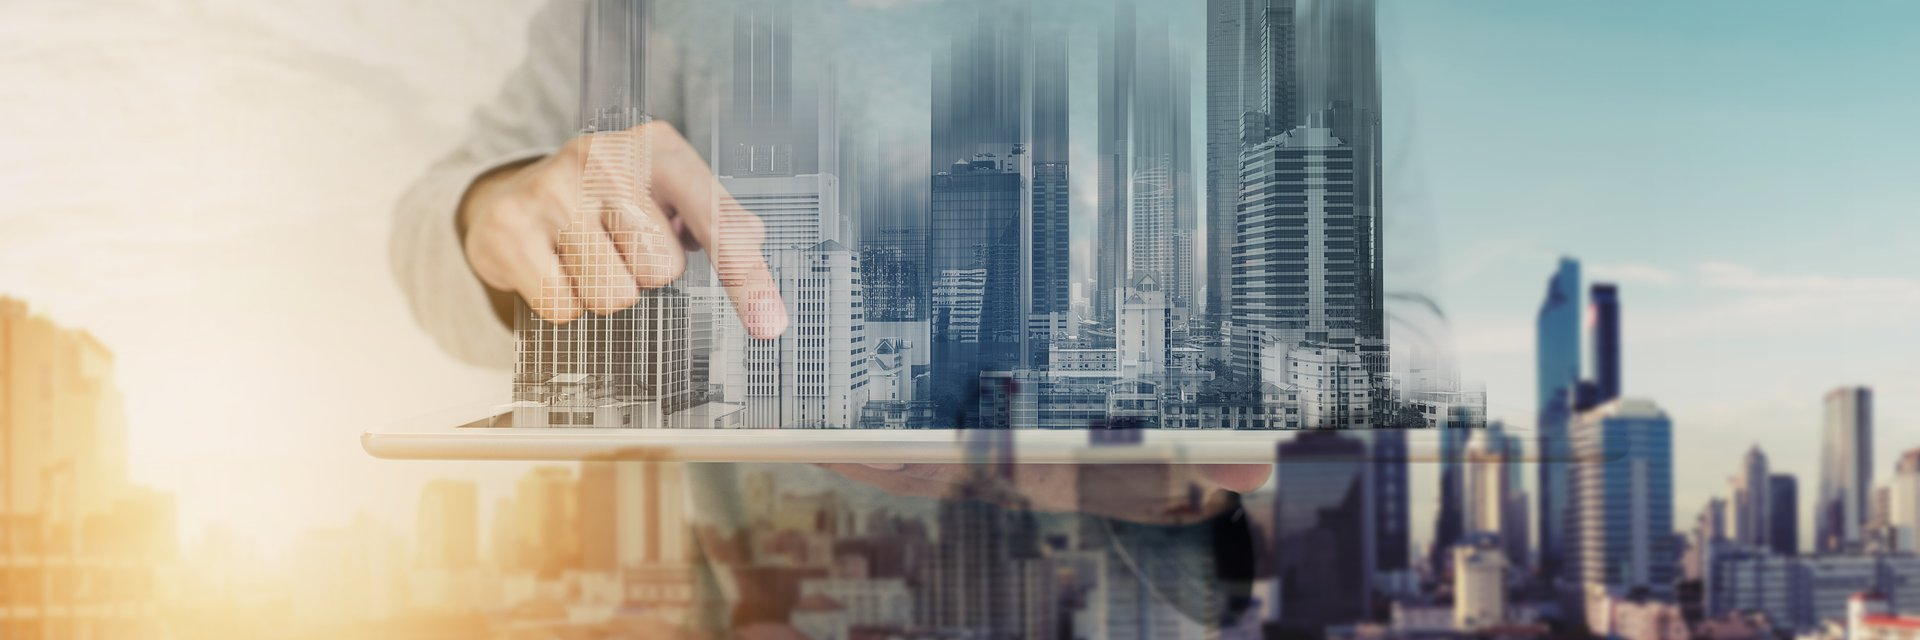 BNP PARIBAS REAL ESTATE SECURES SIGNIFICANT DEALS DESPITE LOCKDOWN DEMONSTRATING RESILIENCE IN THE EUROPEAN REAL ESTATE MARKET